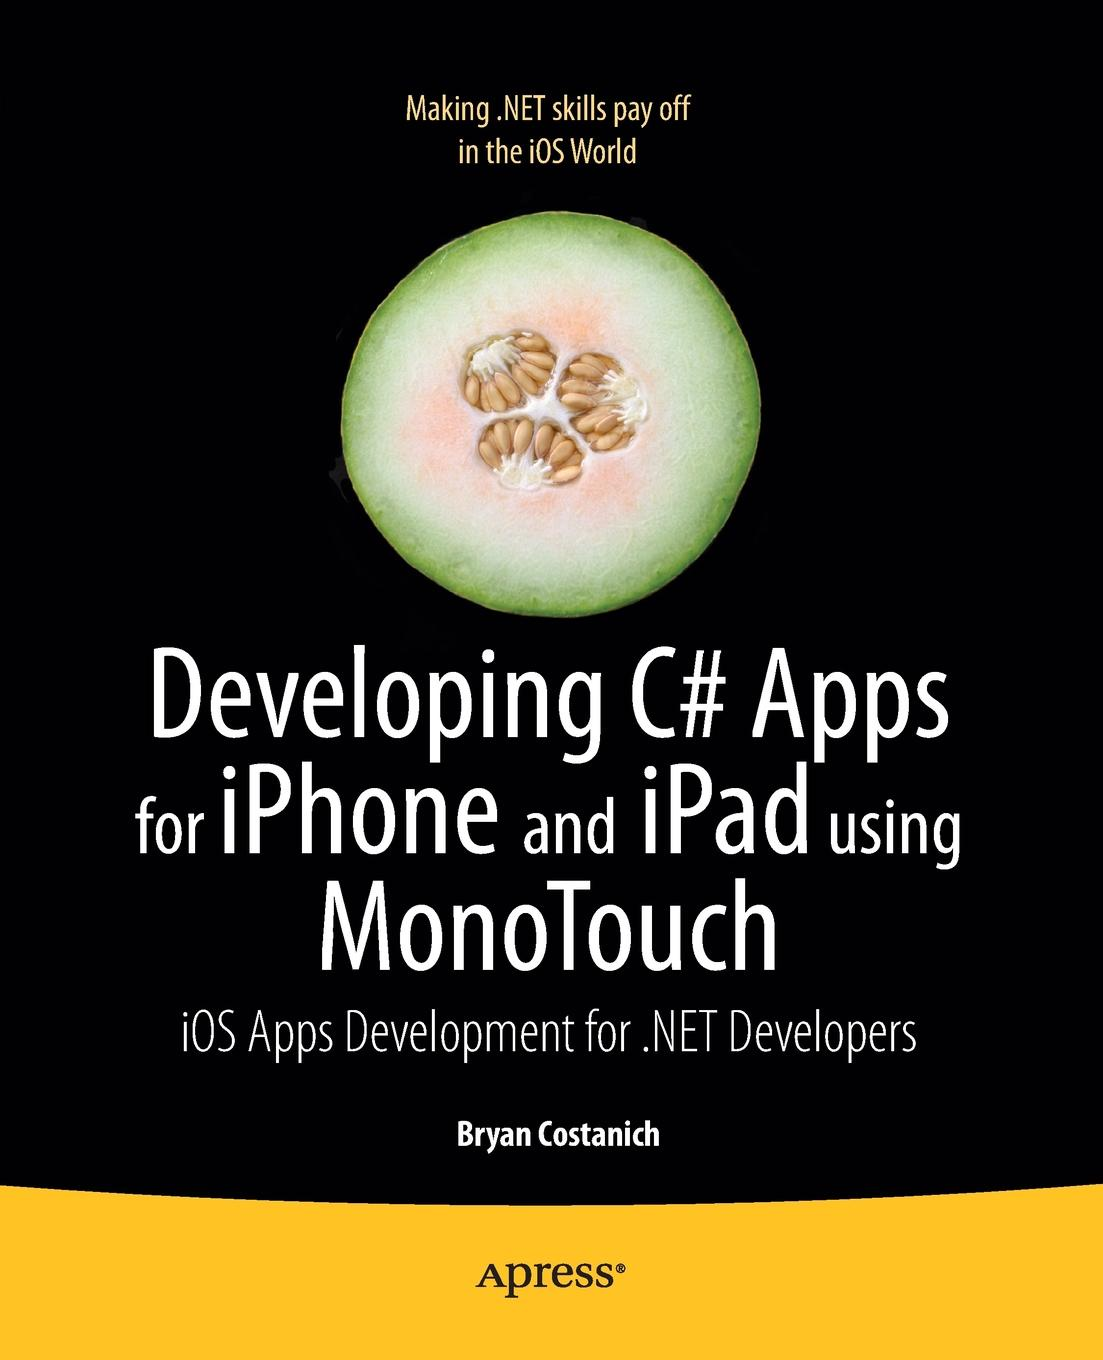 Brian Costanich, Bryan Costanich Developing C# Apps for iPhone and iPad Using Monotouch. IOS Apps Development for .Net Developers rory lewis laurence moroney iphone and ipad apps for absolute beginners